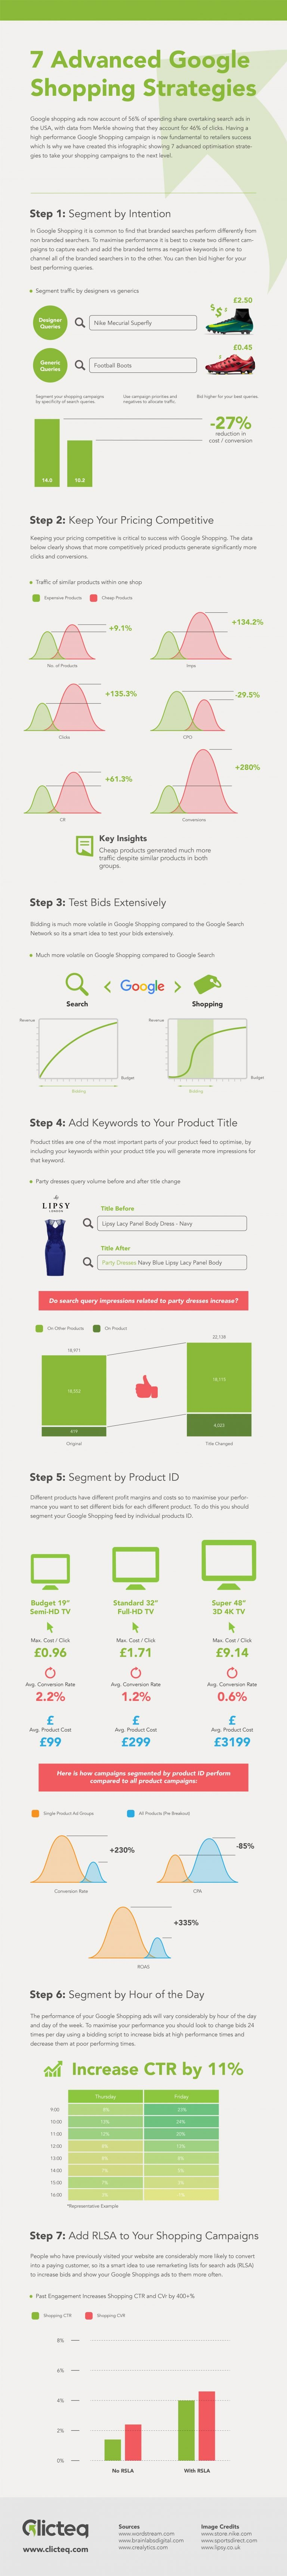 7 Advanced Google Shopping Strategies infographic